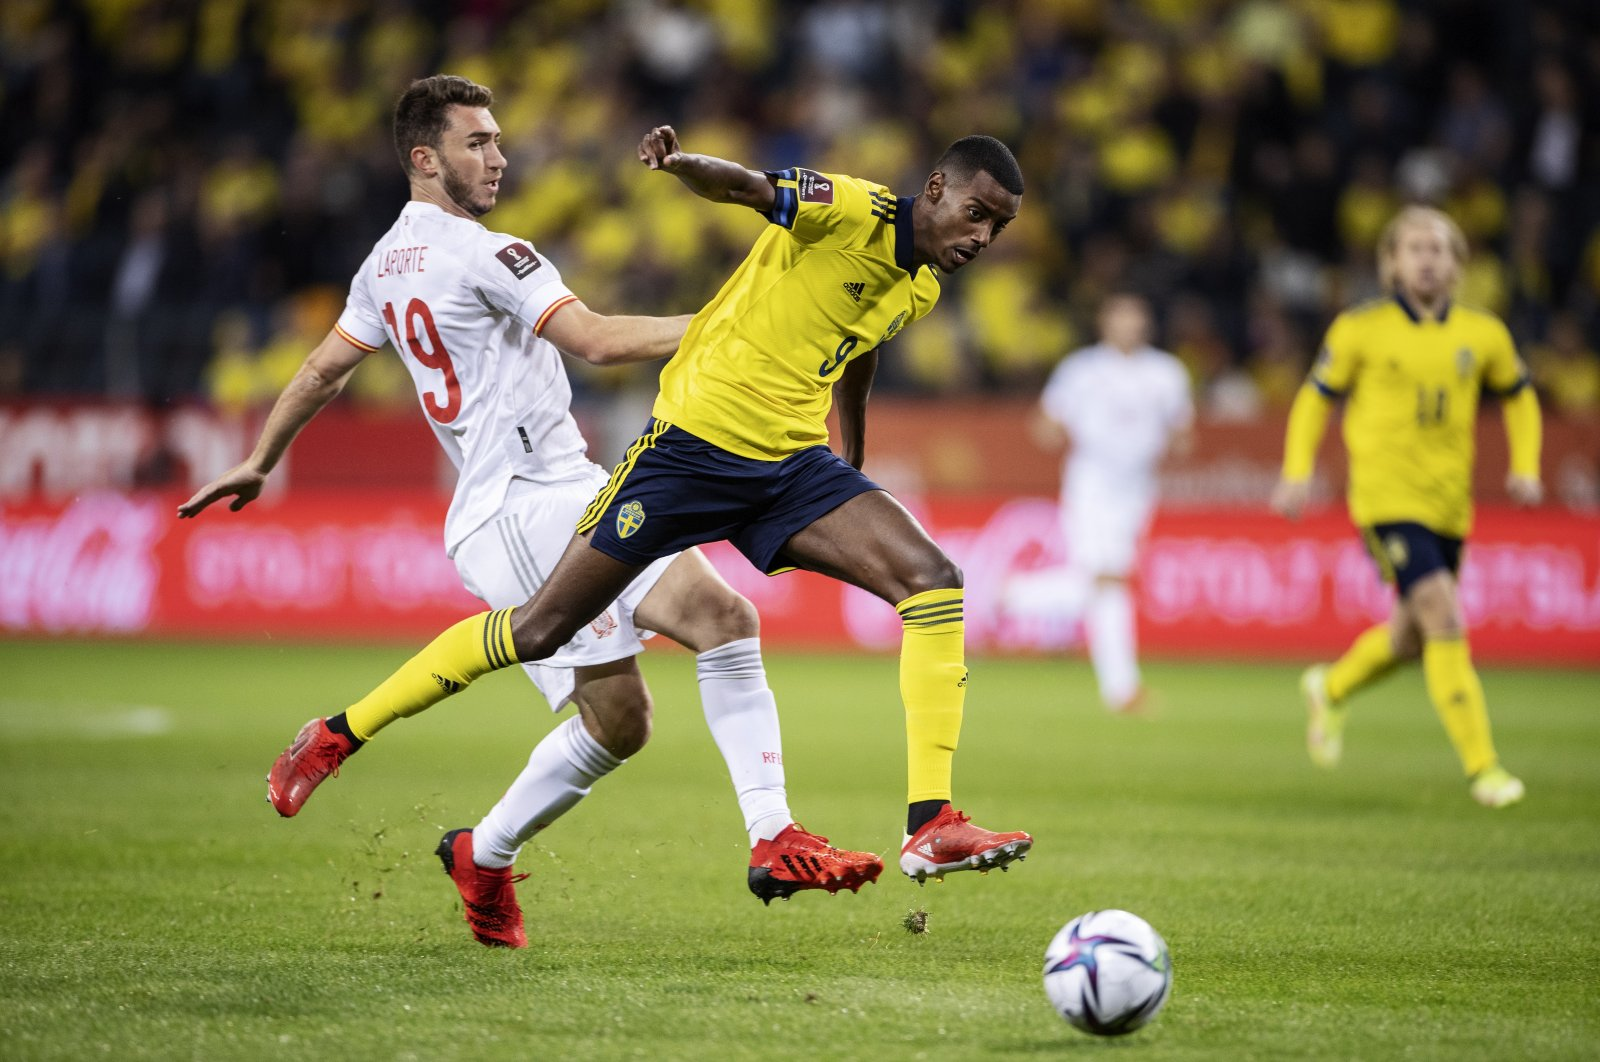 Spain's Aymeric Laporte (L) against Sweden's Alexander Isak during their 2022 FIFA World Cup qualifier match at Friends Arena, Stockholm, Sweden, Sept. 2, 2021. (EPA Photo)